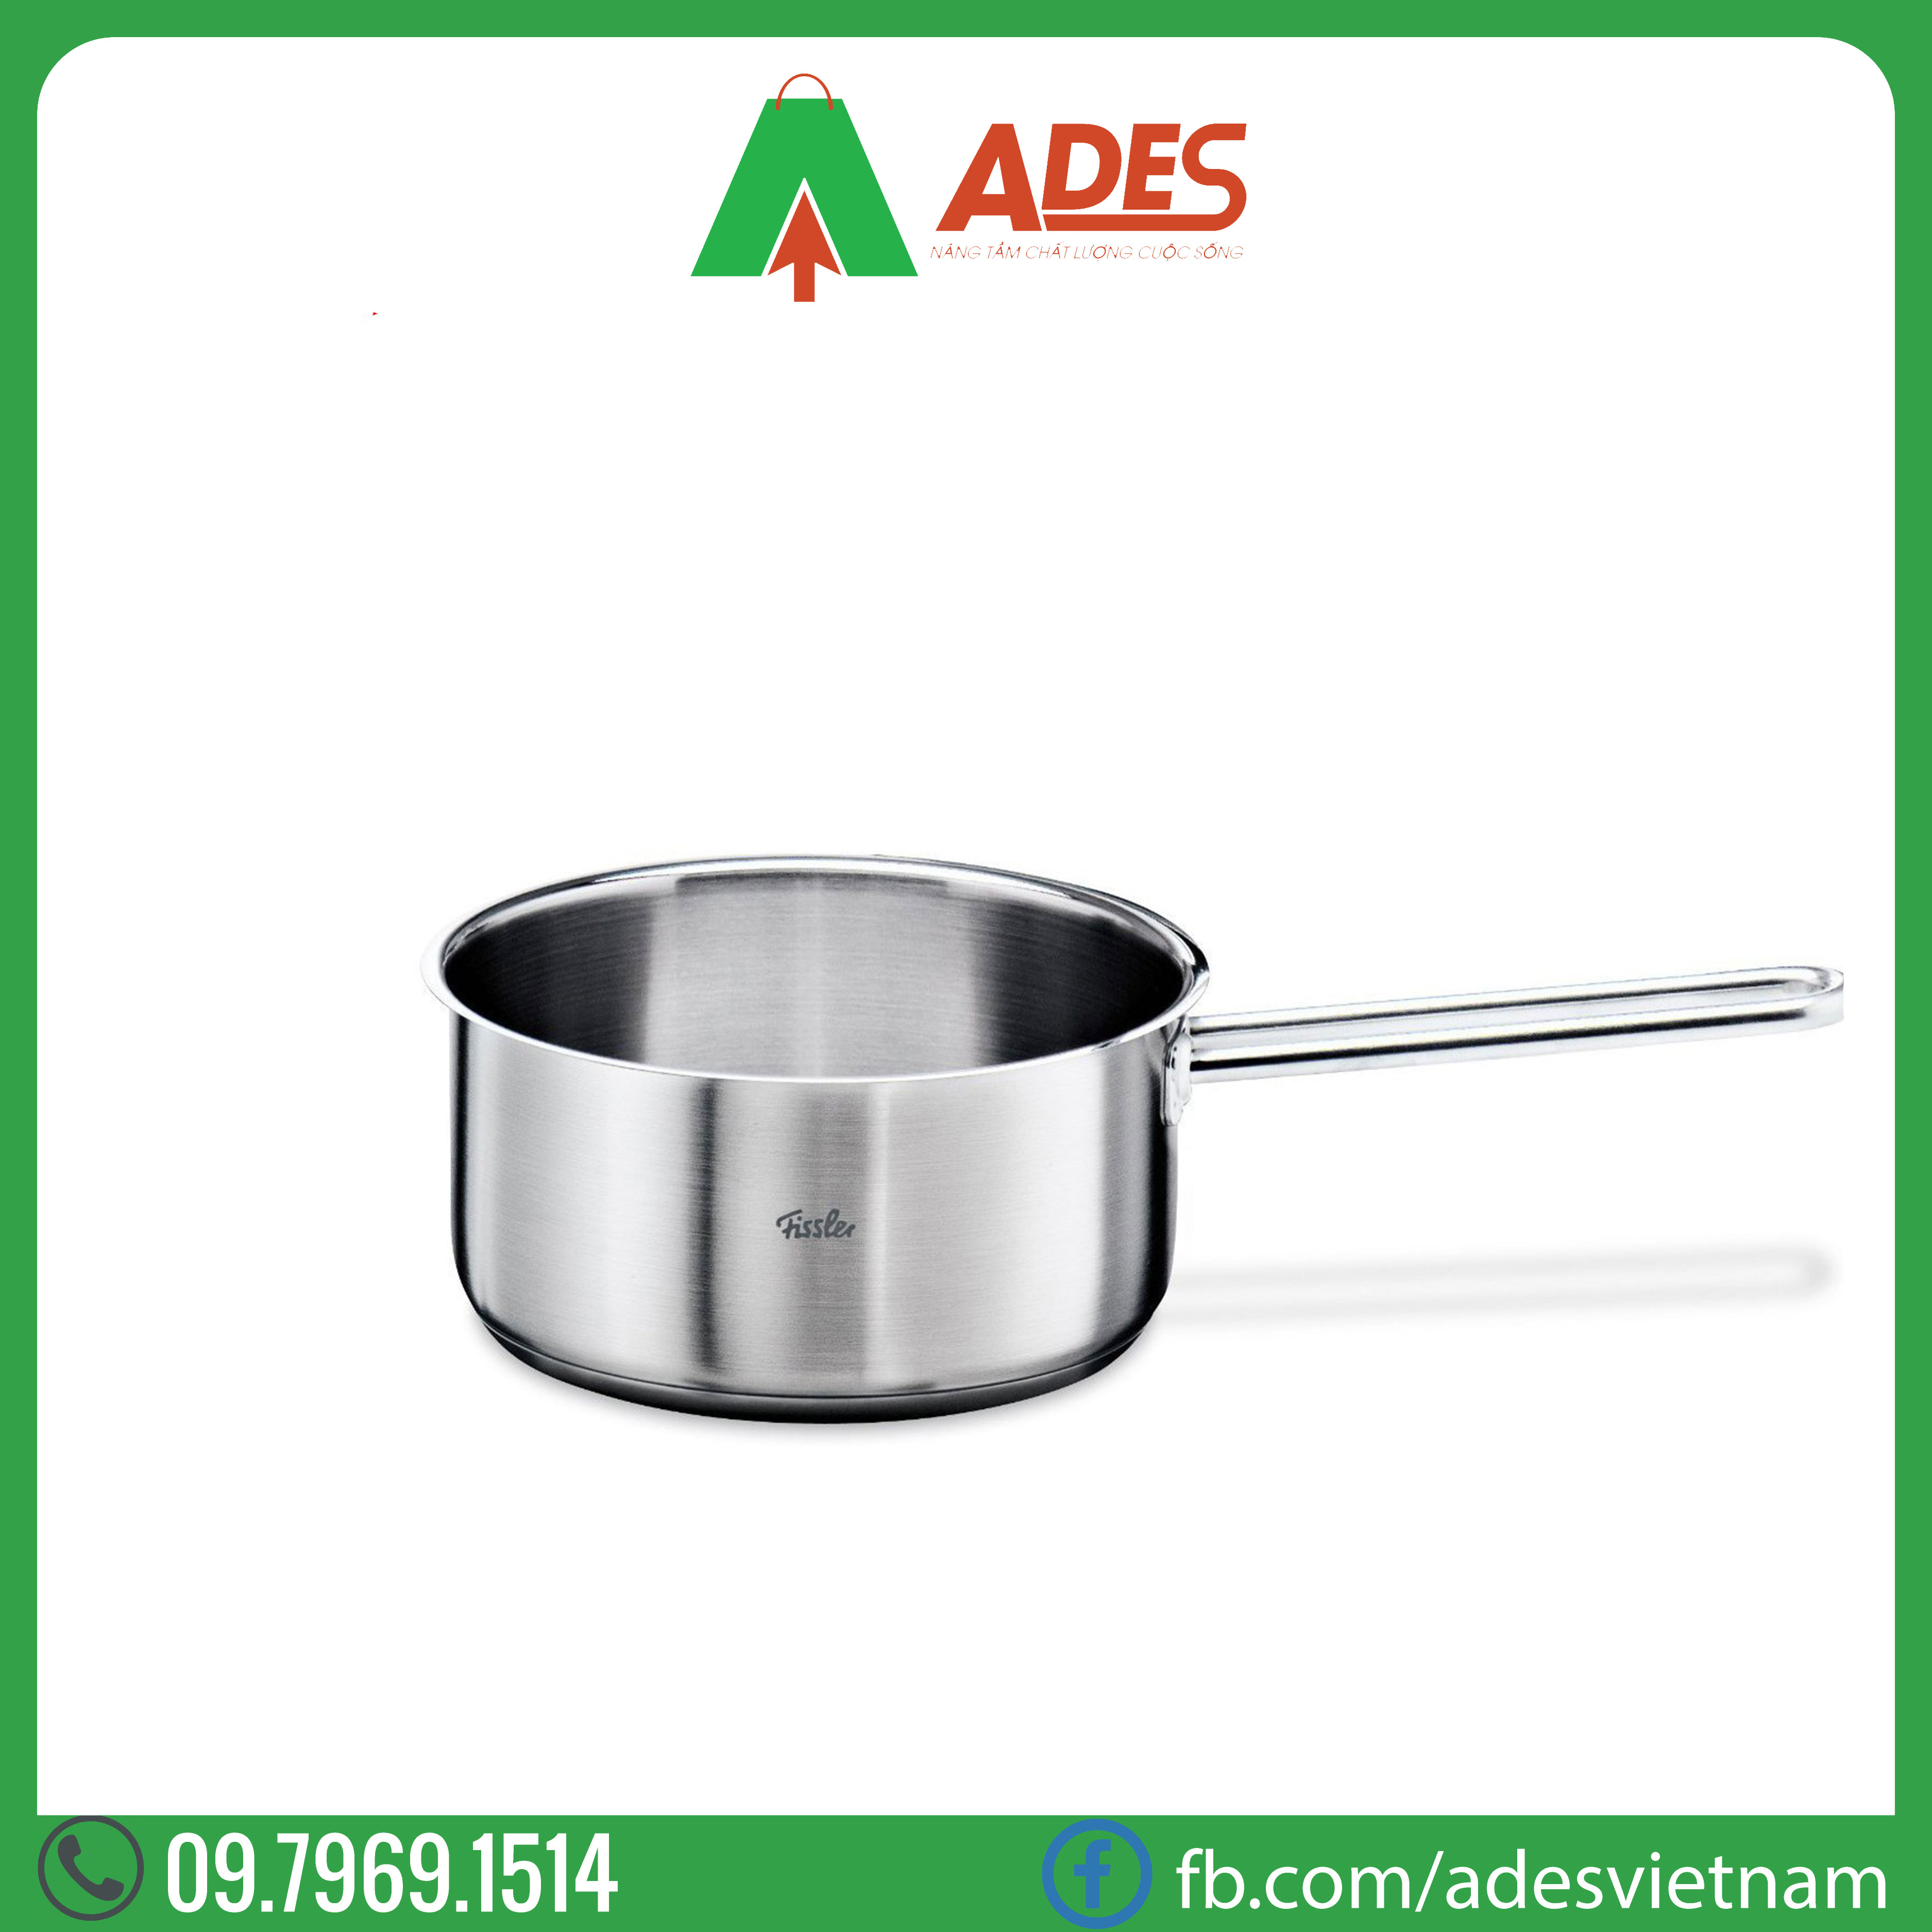 Quanh Fissler Viseo 16cm 084-157-16-101 Dien may ADES